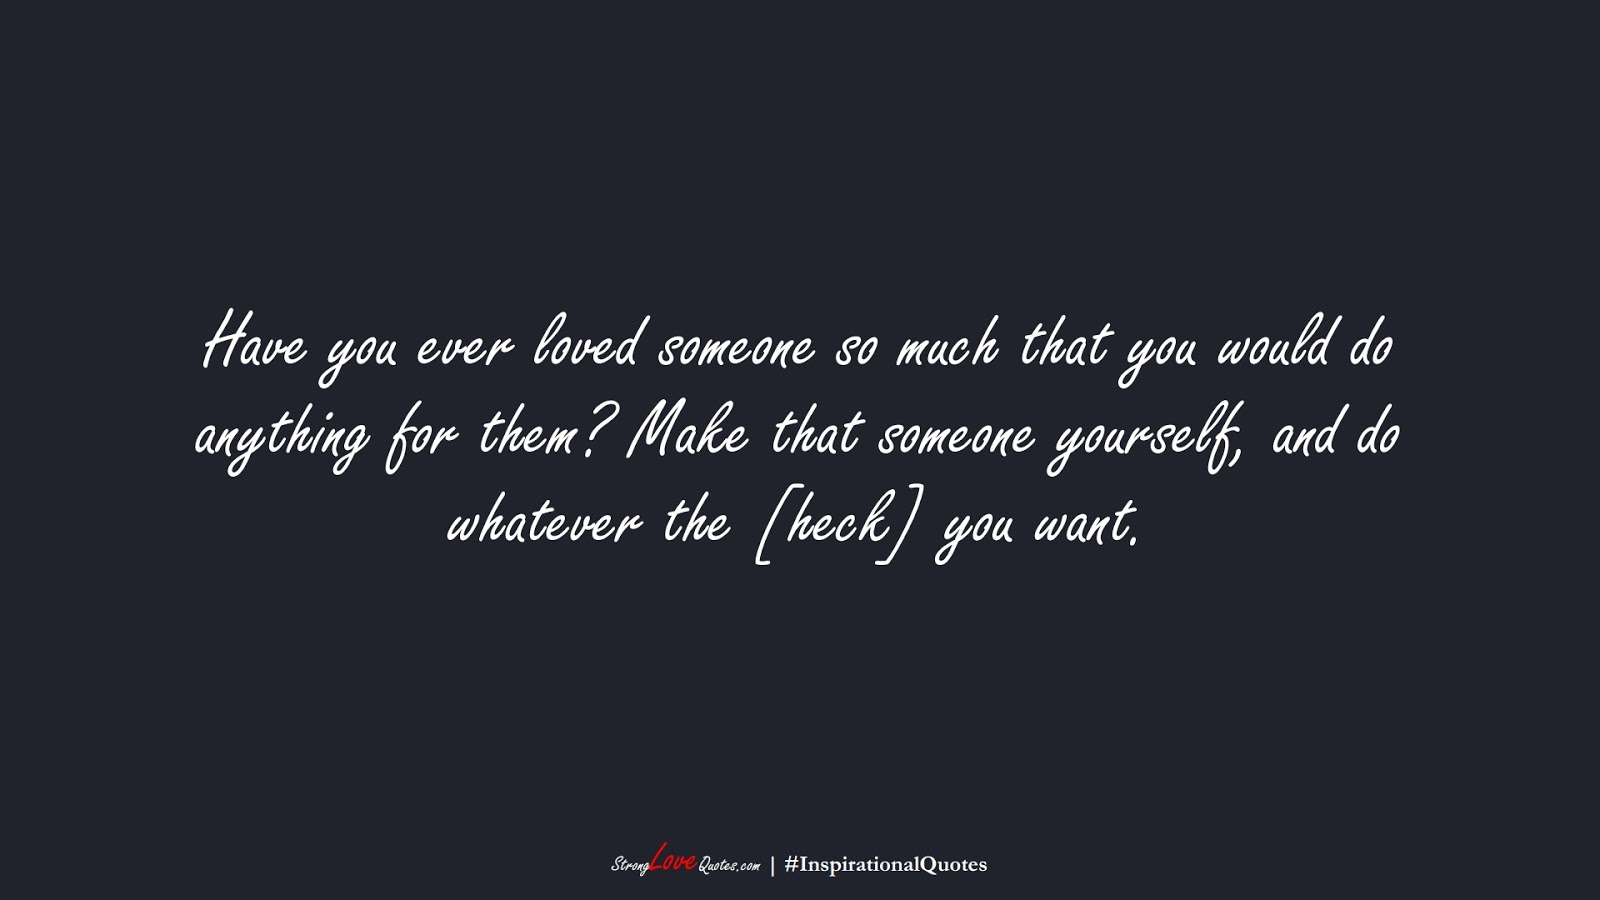 Have you ever loved someone so much that you would do anything for them? Make that someone yourself, and do whatever the [heck] you want.FALSE